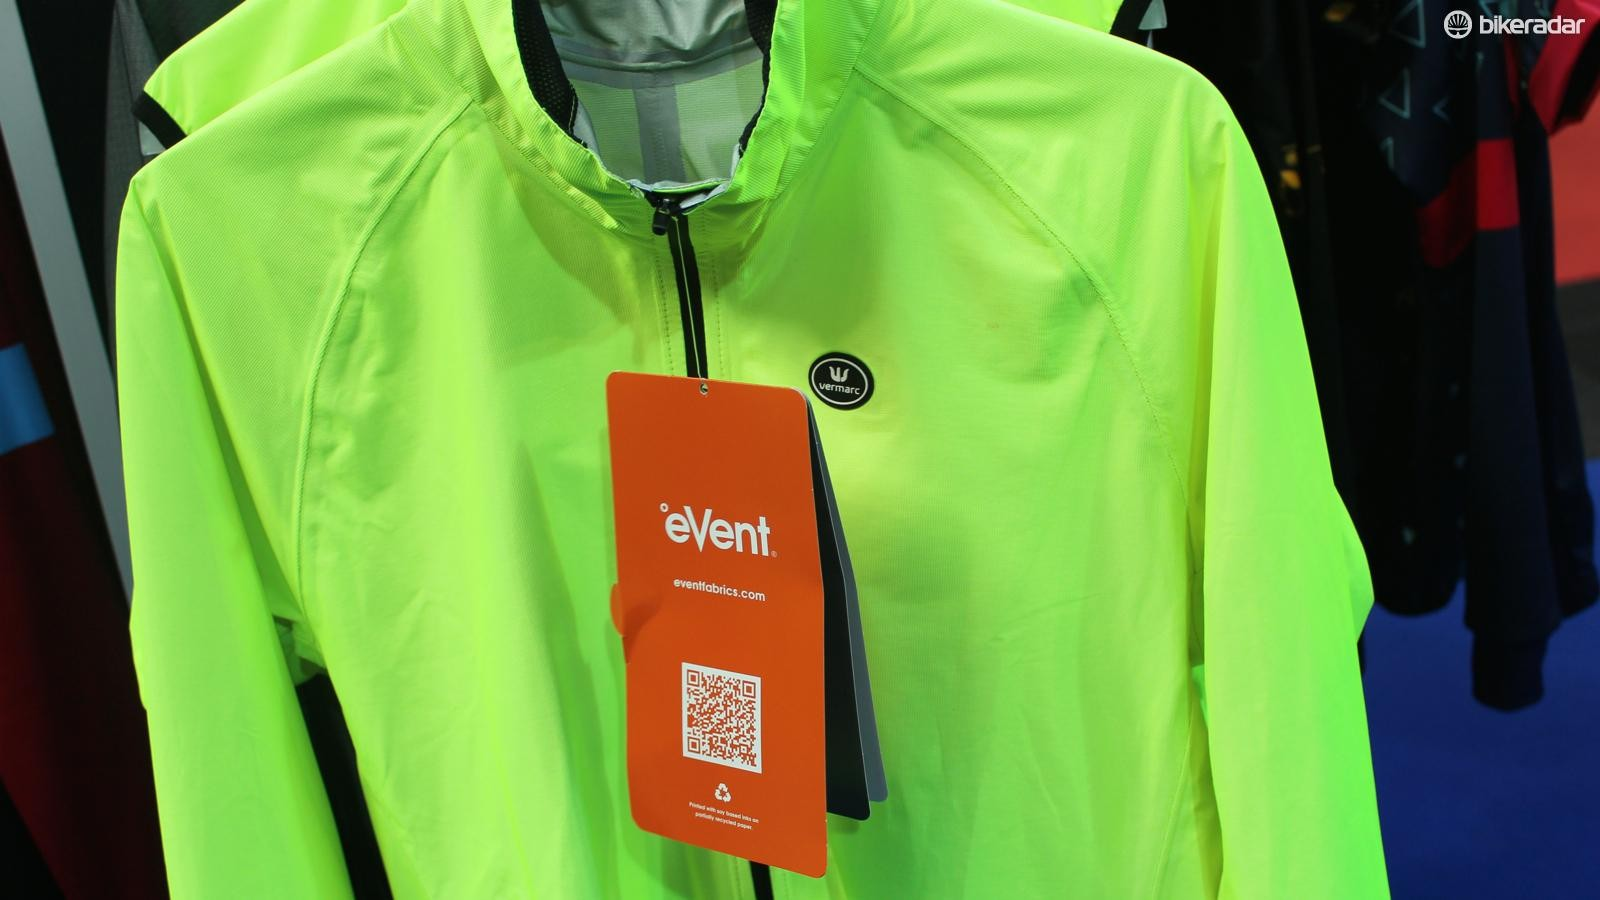 Vermarc is one of a few brands with an eVent rain jacket